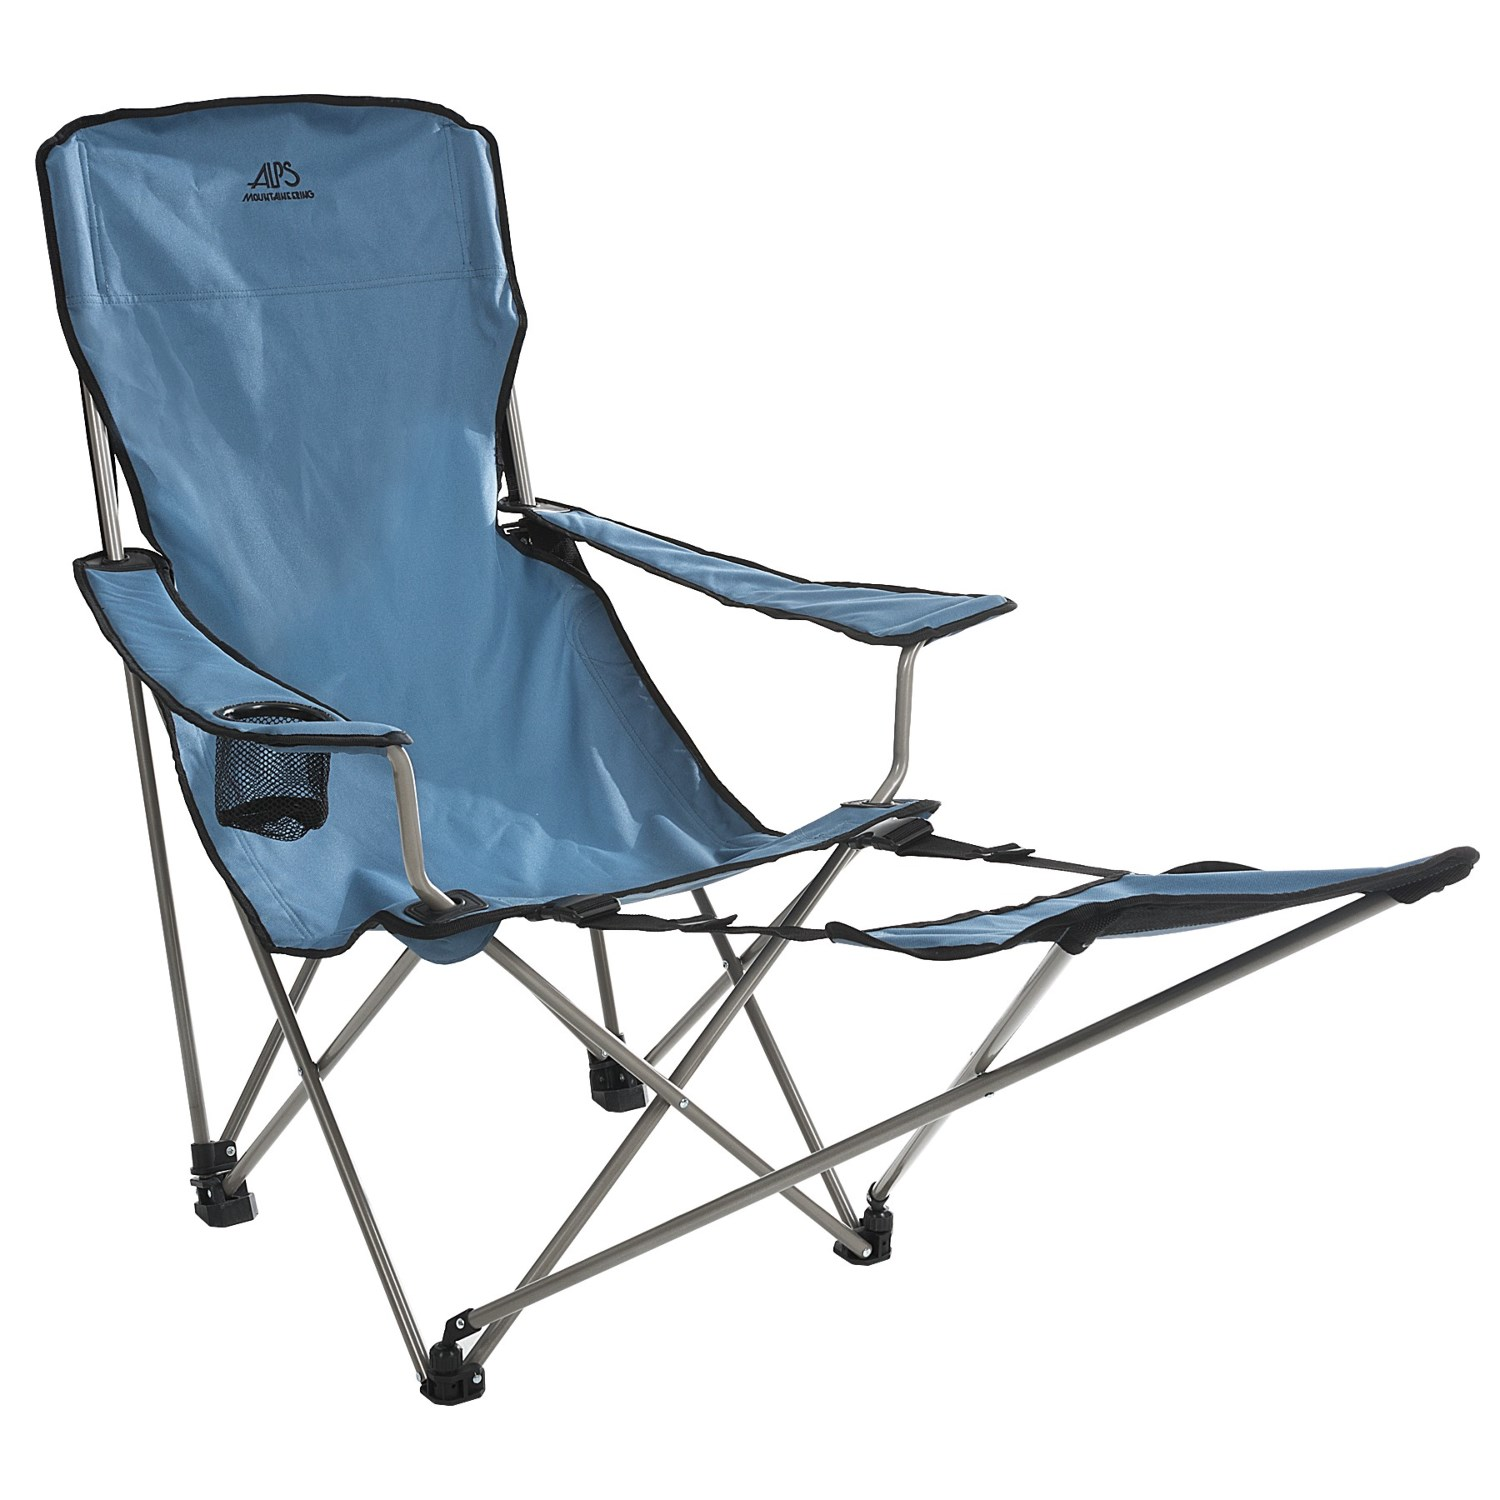 Camper Chairs Alps Mountaineering Escape Camp Chair Save 50